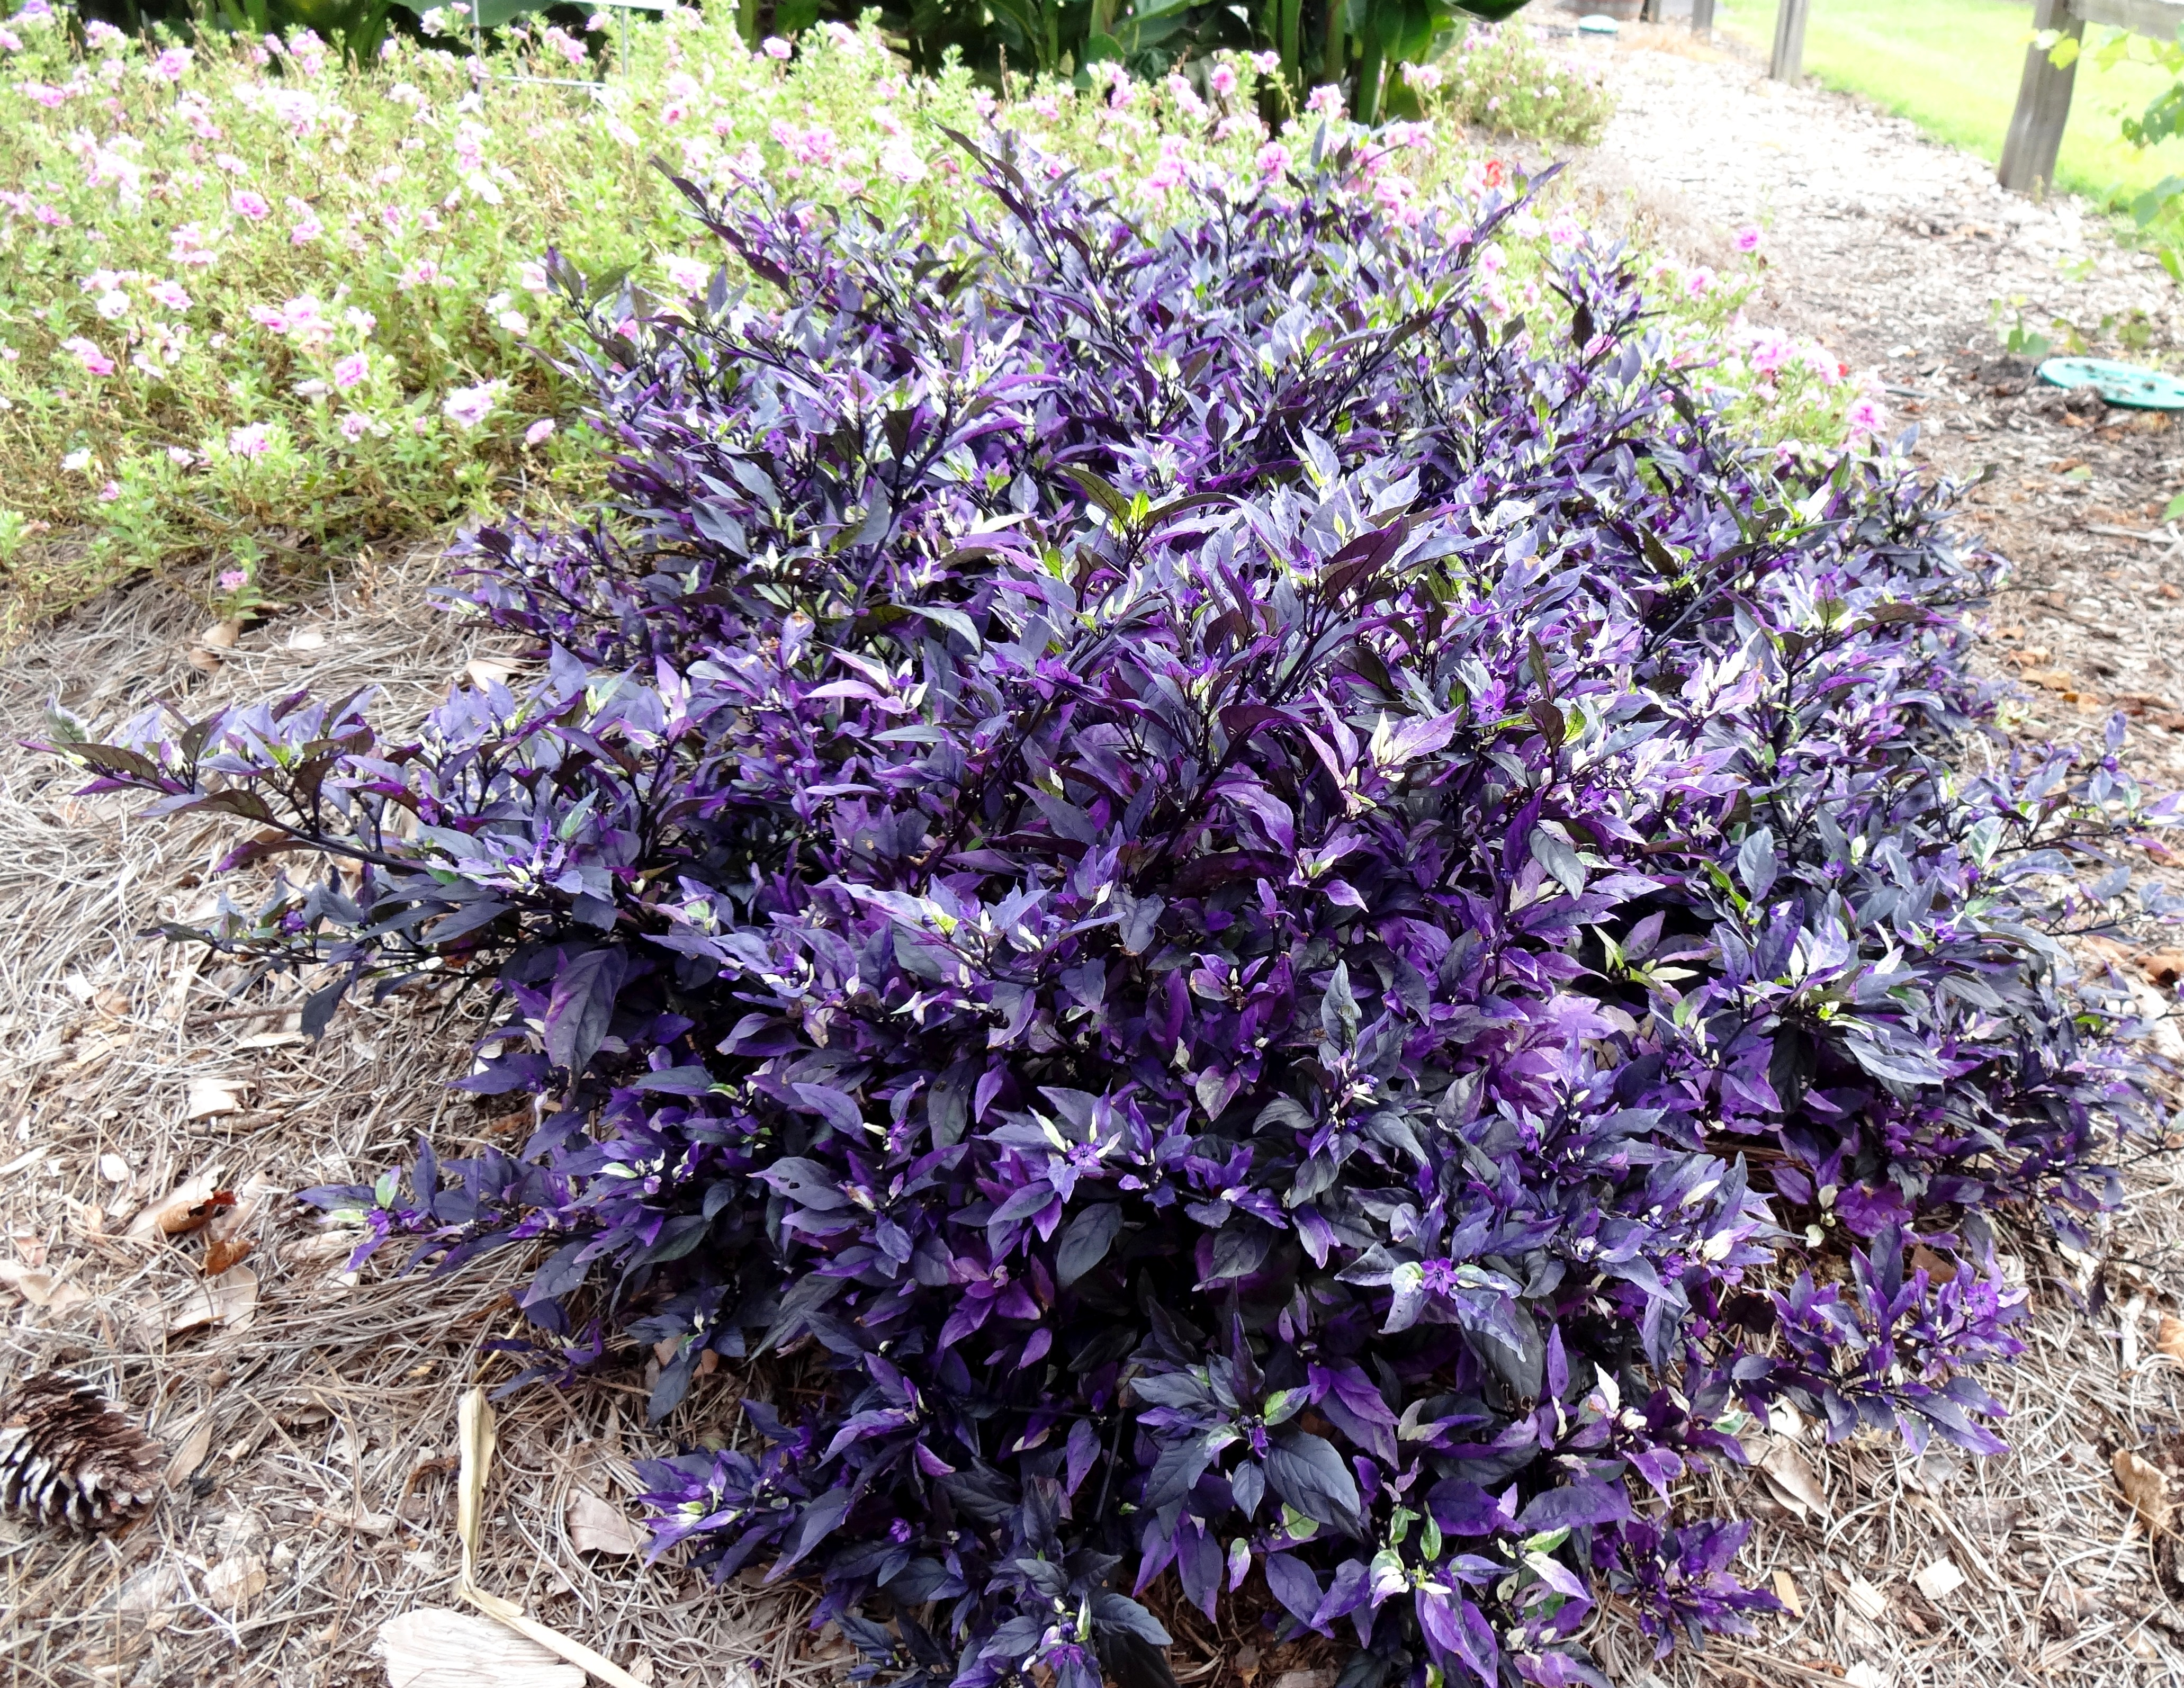 Ornamental peppers add color to fall landscapes lsu agcenter for Ornamental garden plants